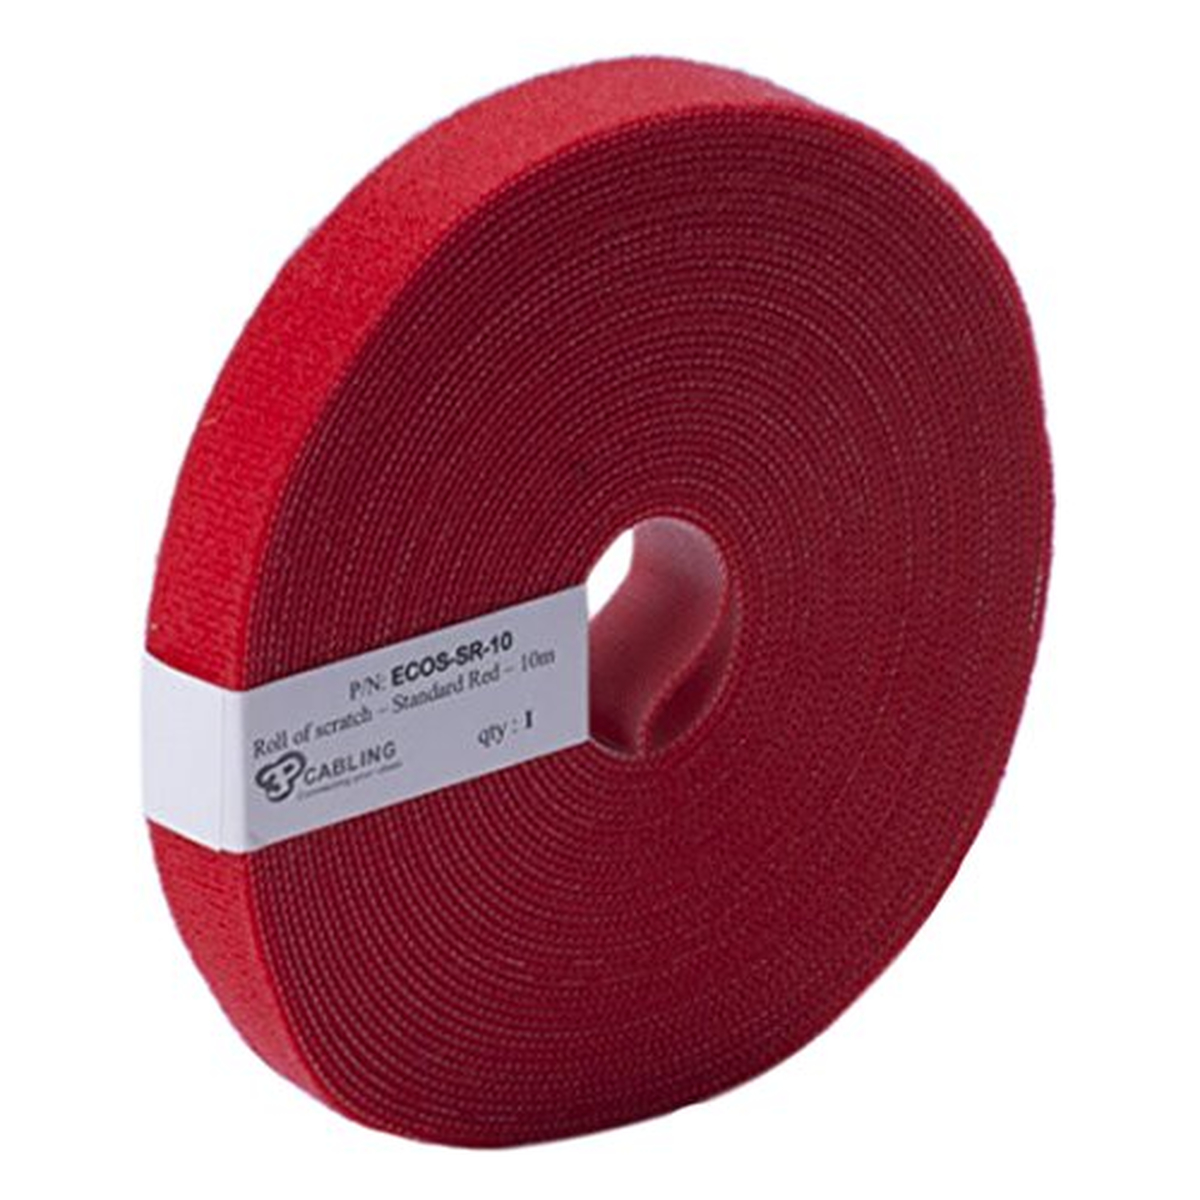 Patchsee Eco-Scratch, Kabelbinder, 10m lang,19mm breit, rot